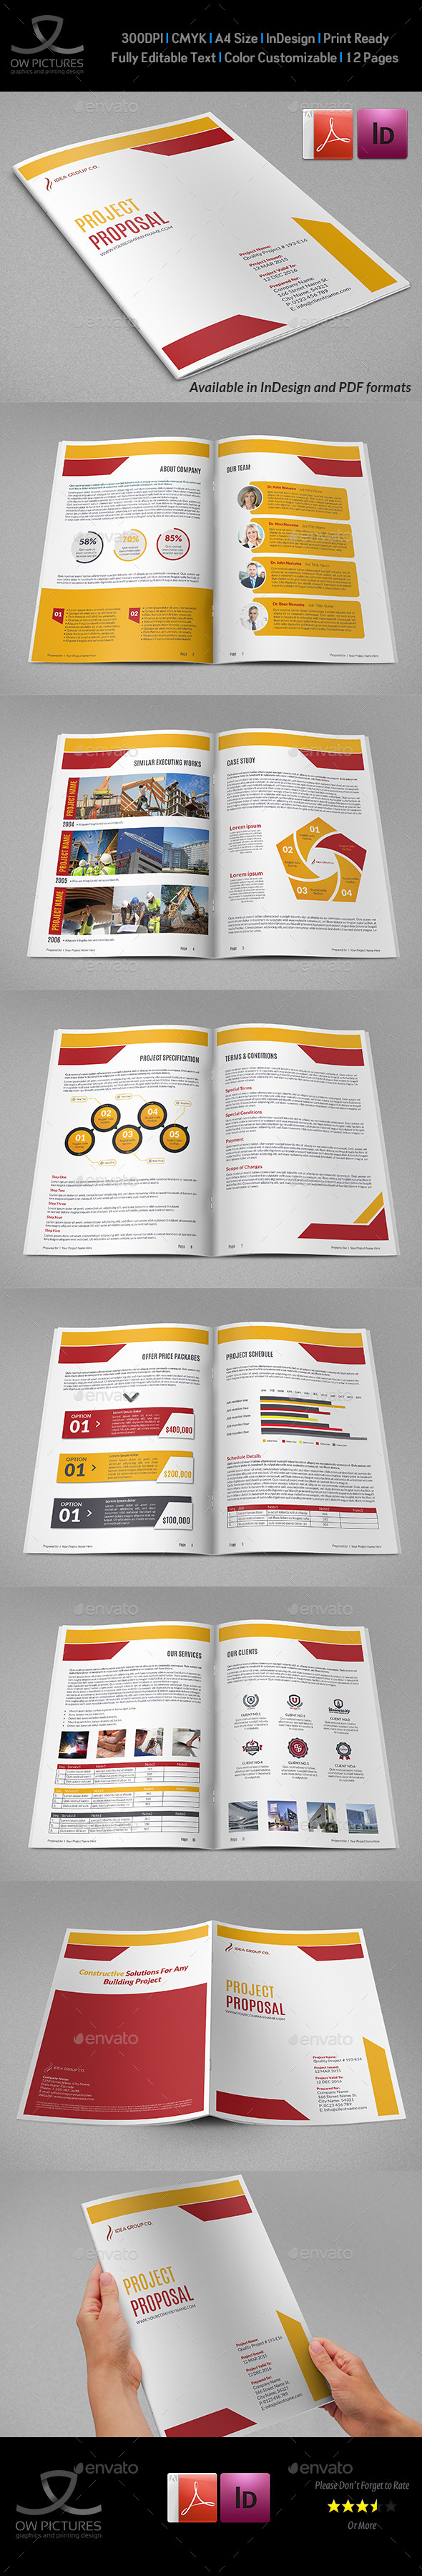 Construction Company Proposal Template Vol  Proposal Templates